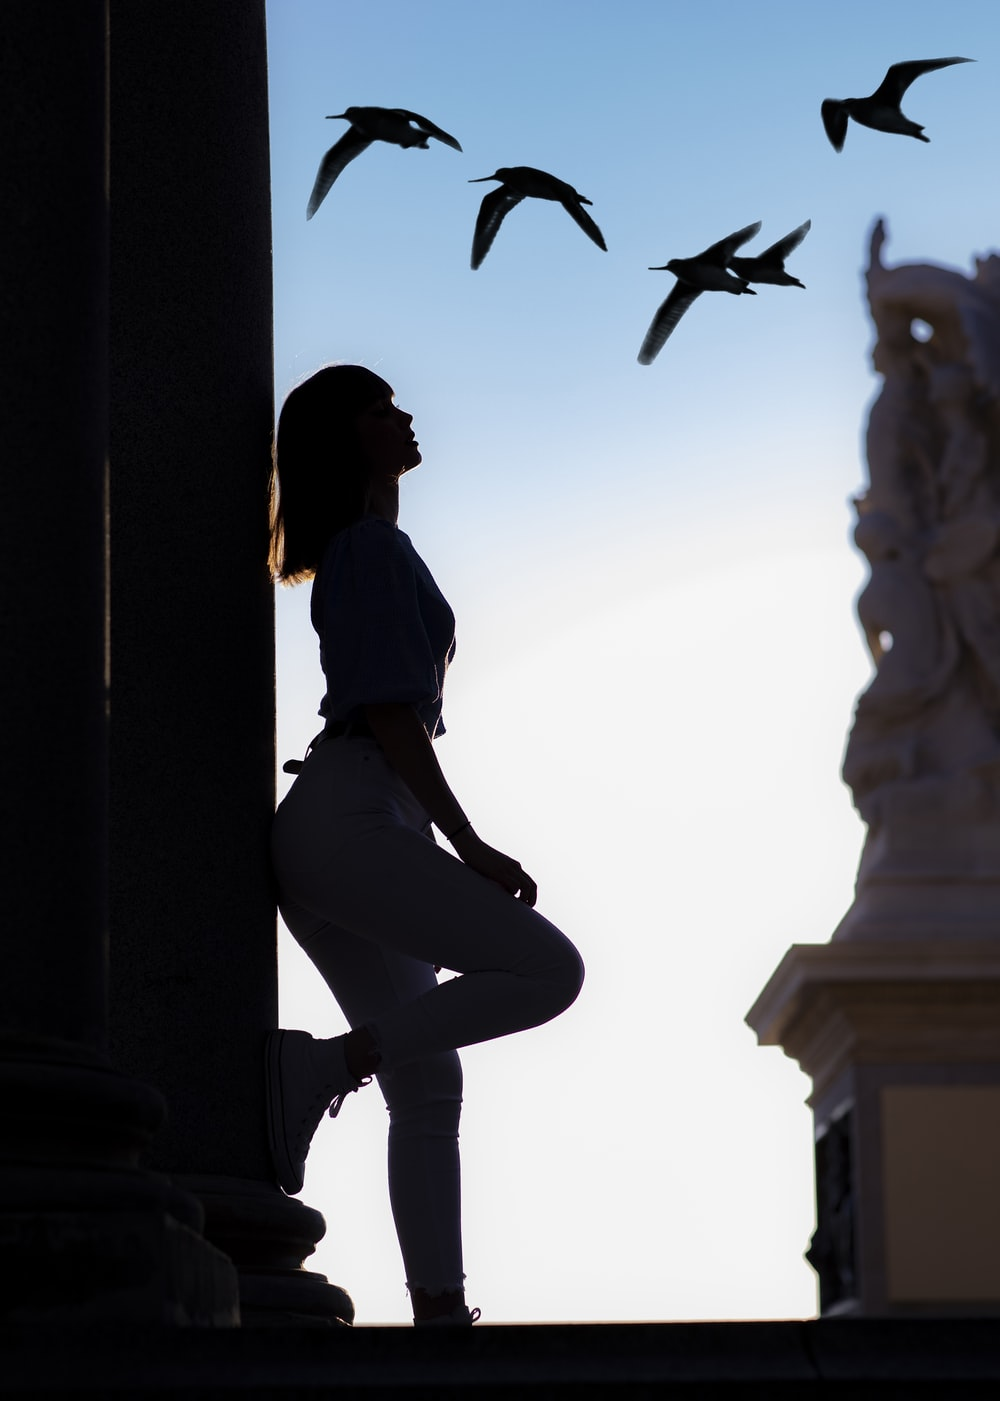 silhouette of woman laying on pillar